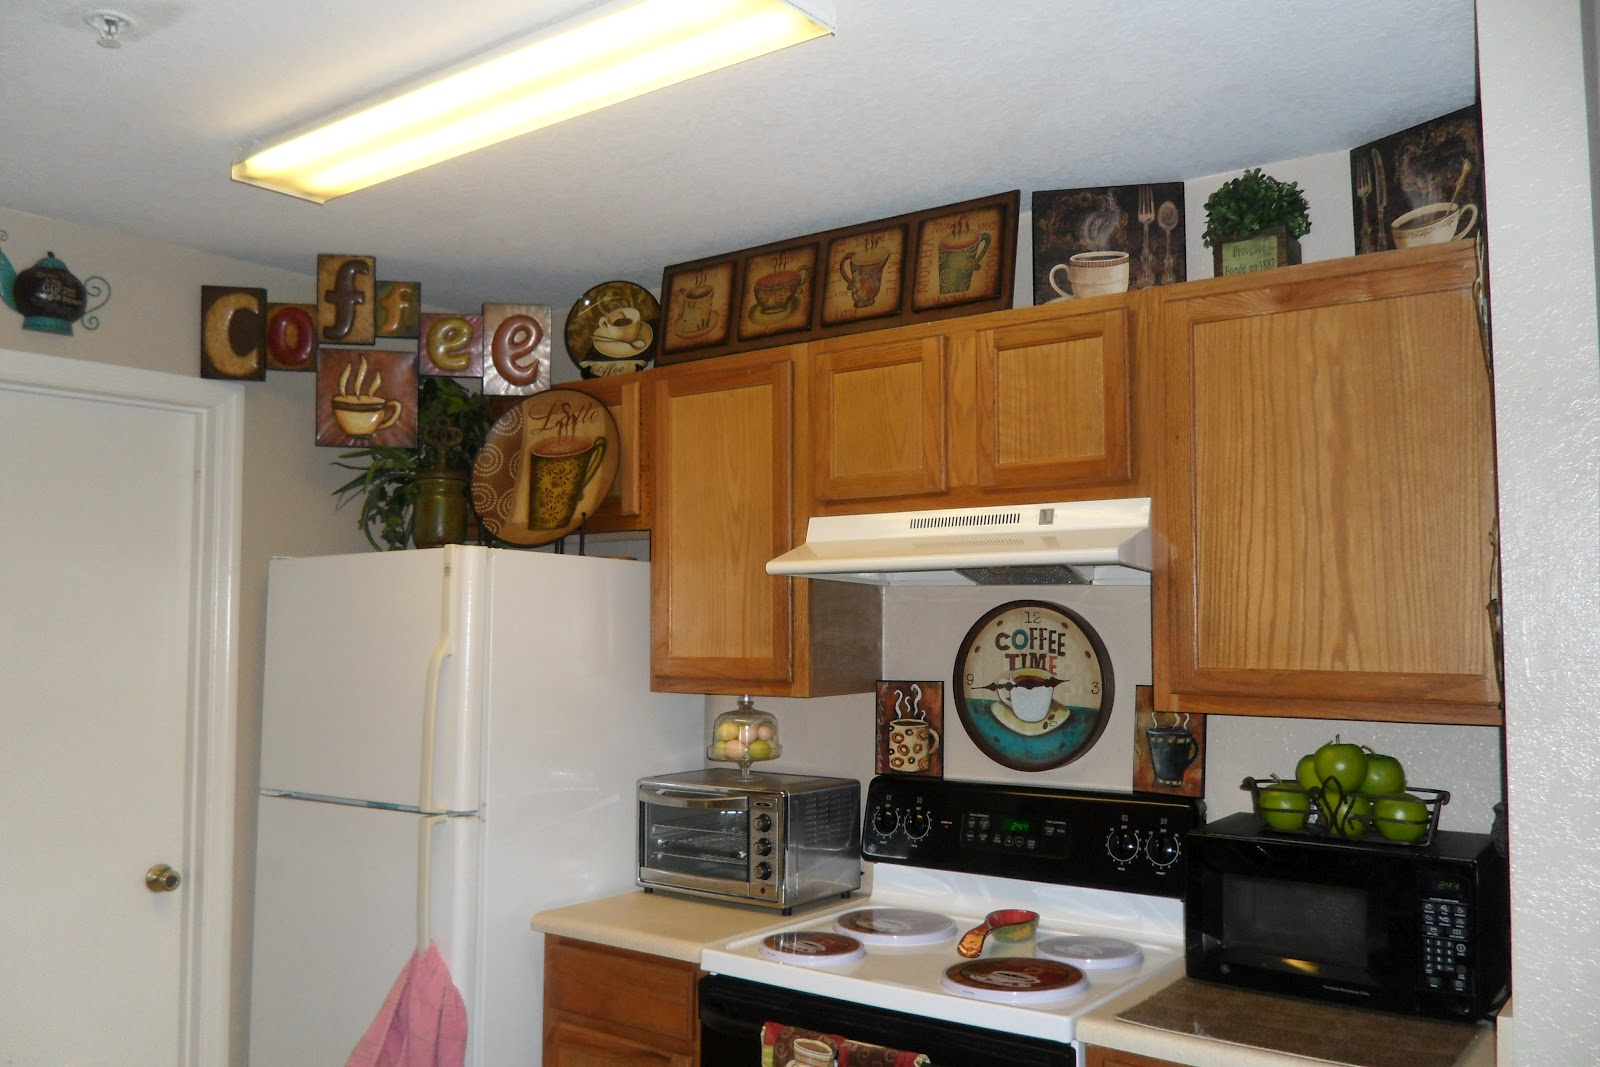 Coffee Decoration For Kitchen Cabinets Refacing Cost Decorating With One Pink Chic My